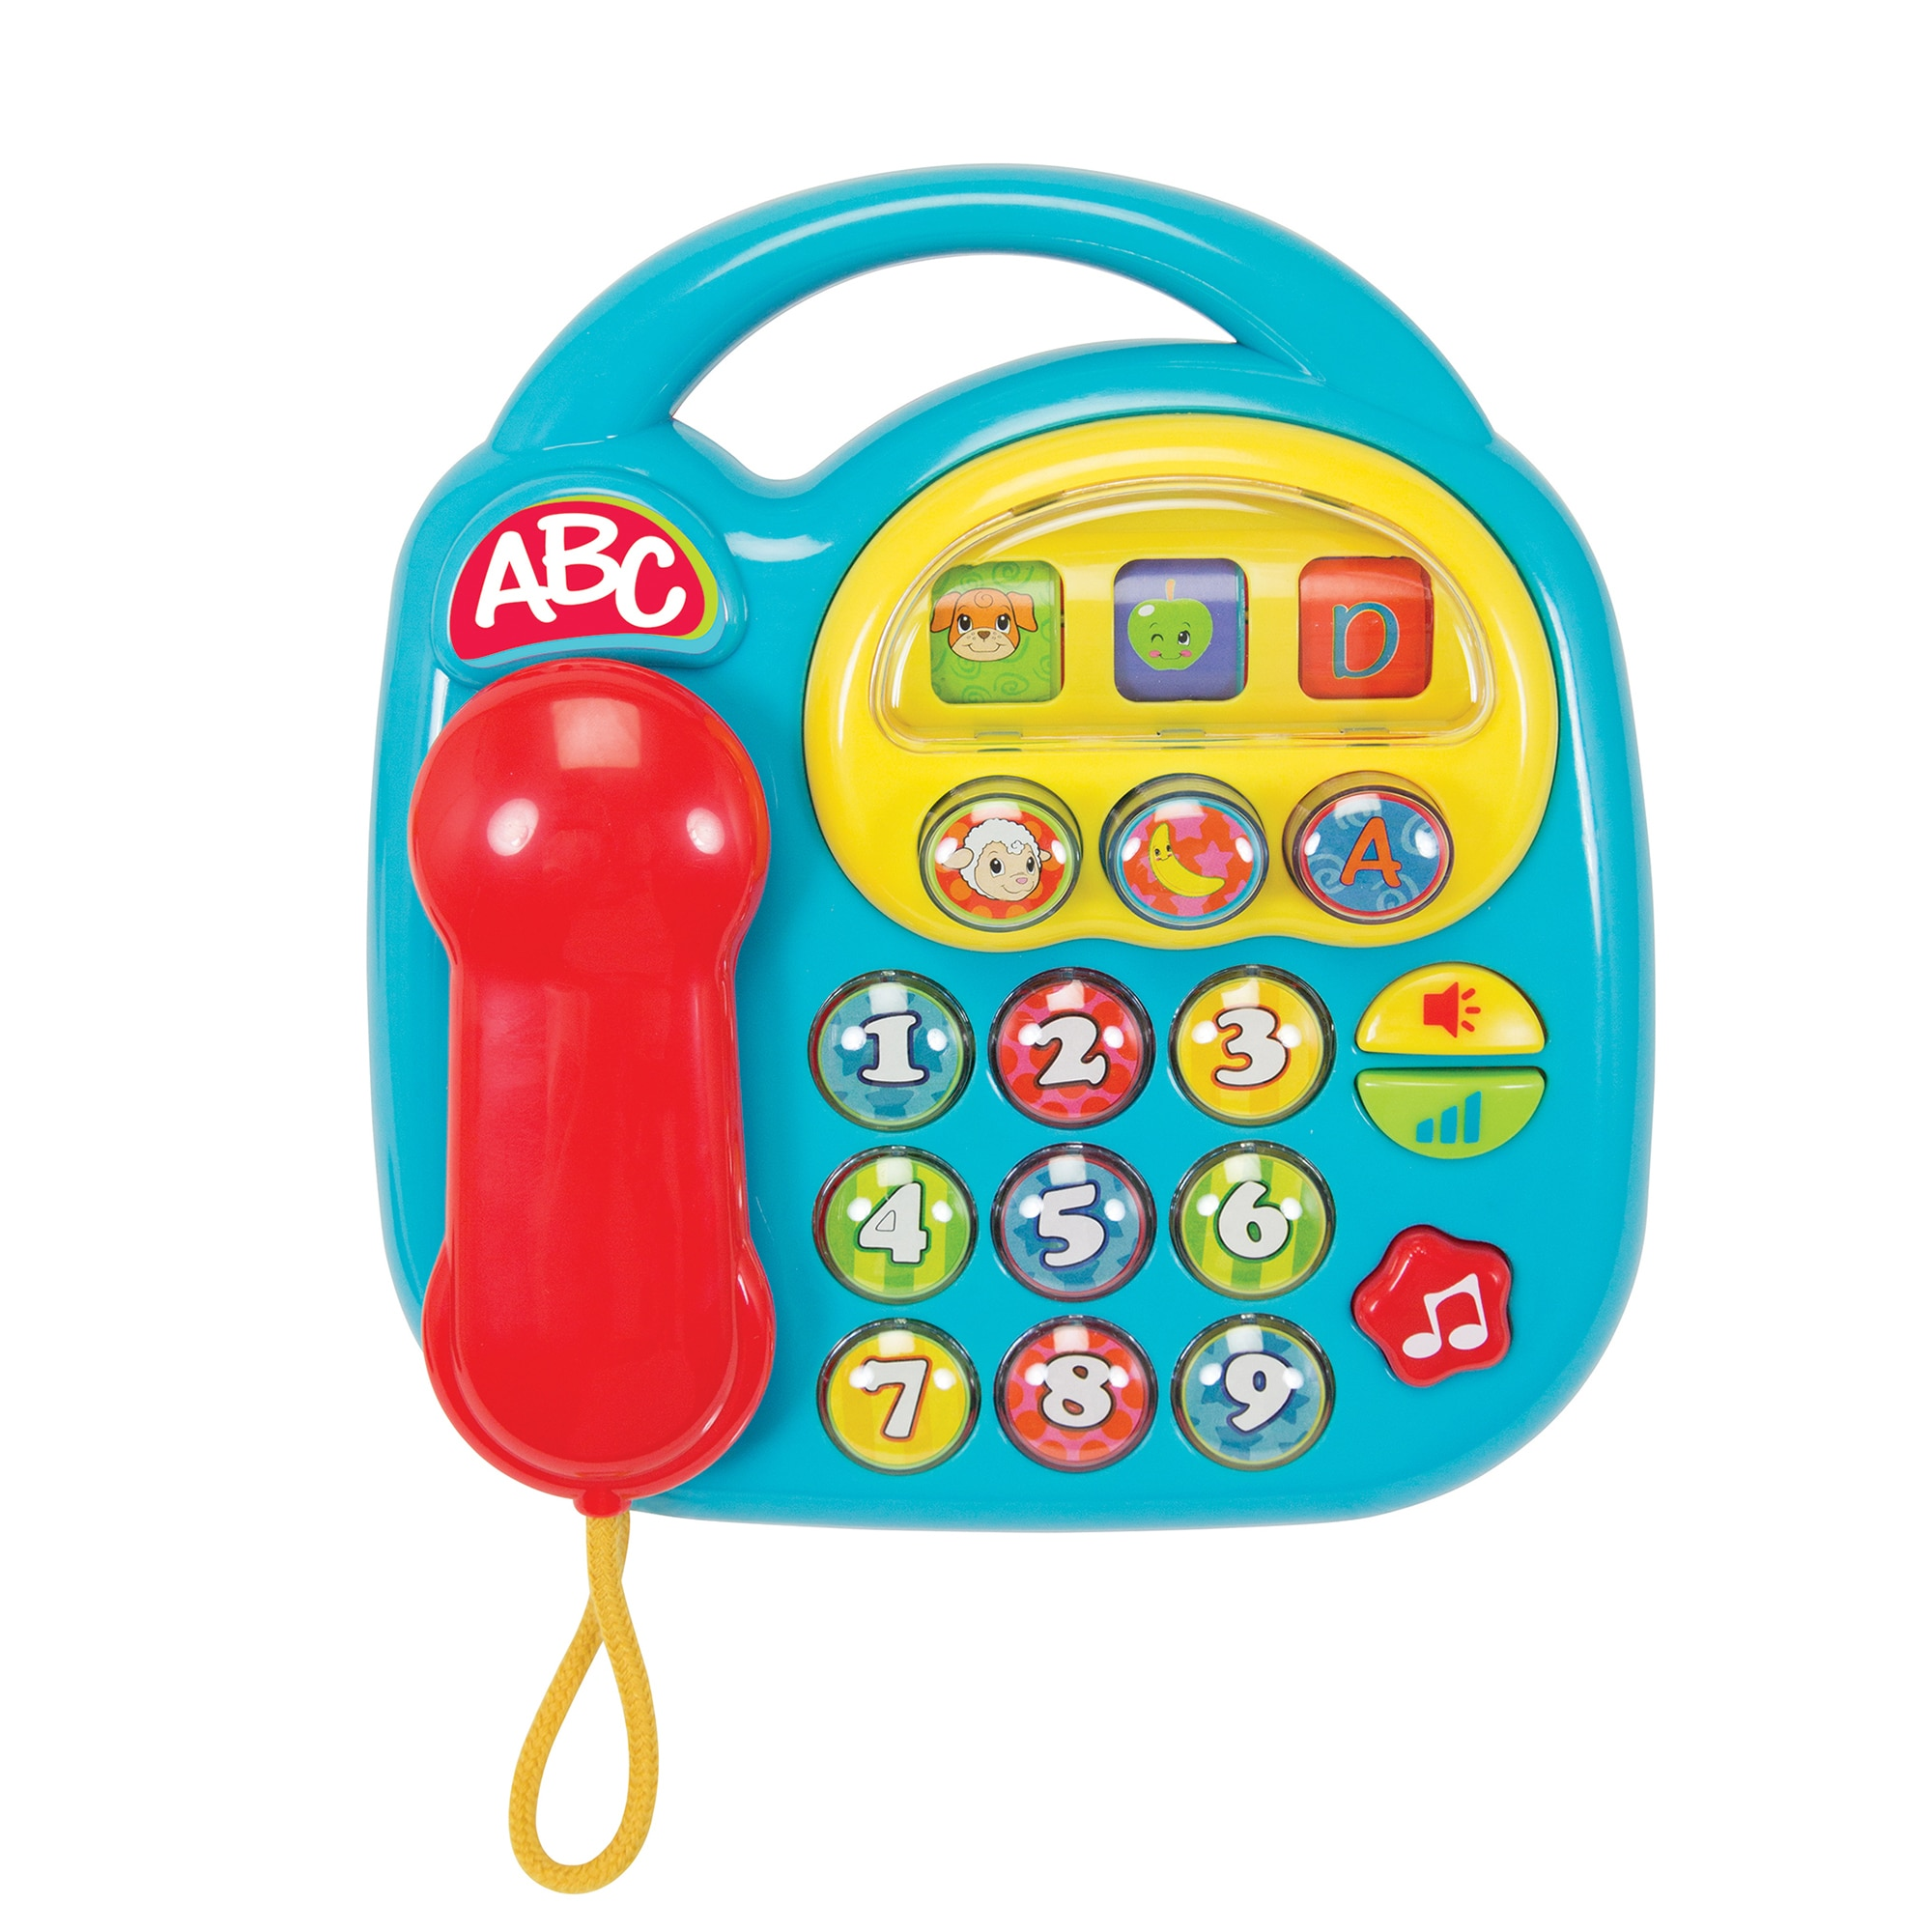 Simba ABC Telephone, Blue